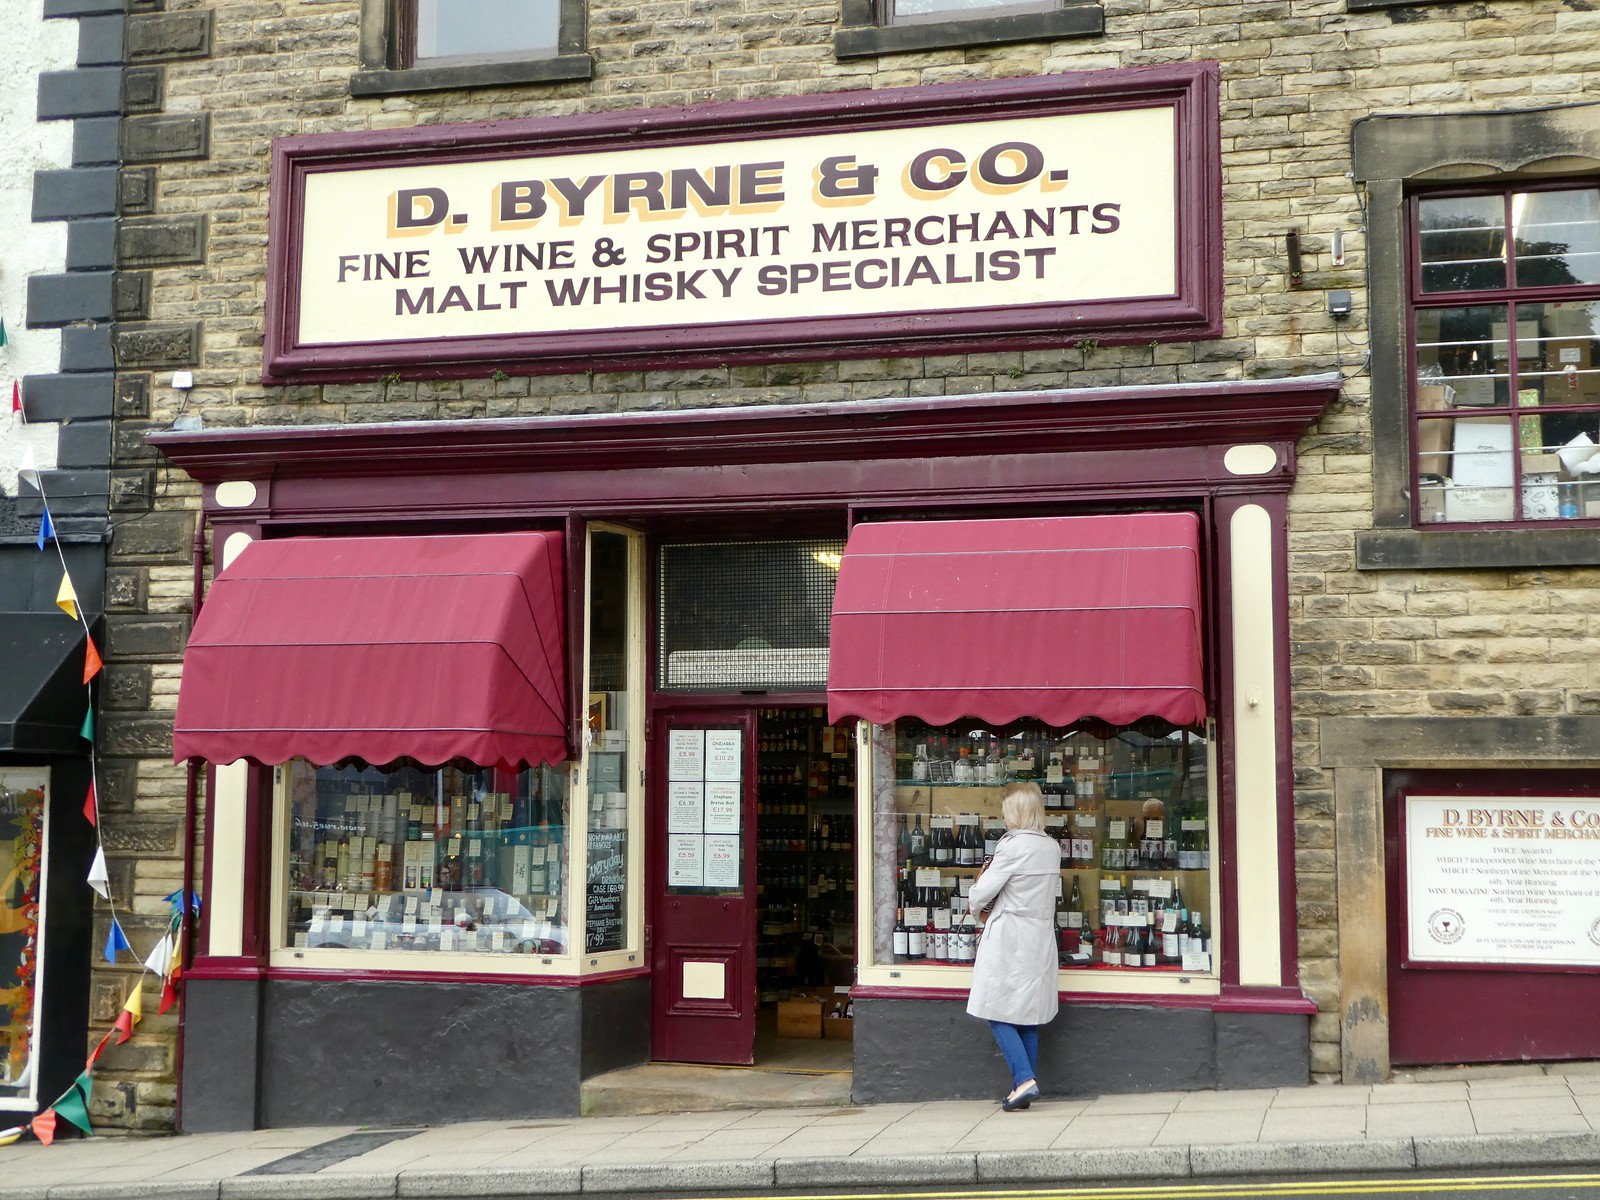 D. Byrne & Co. Wine Merchants, Clitheroe